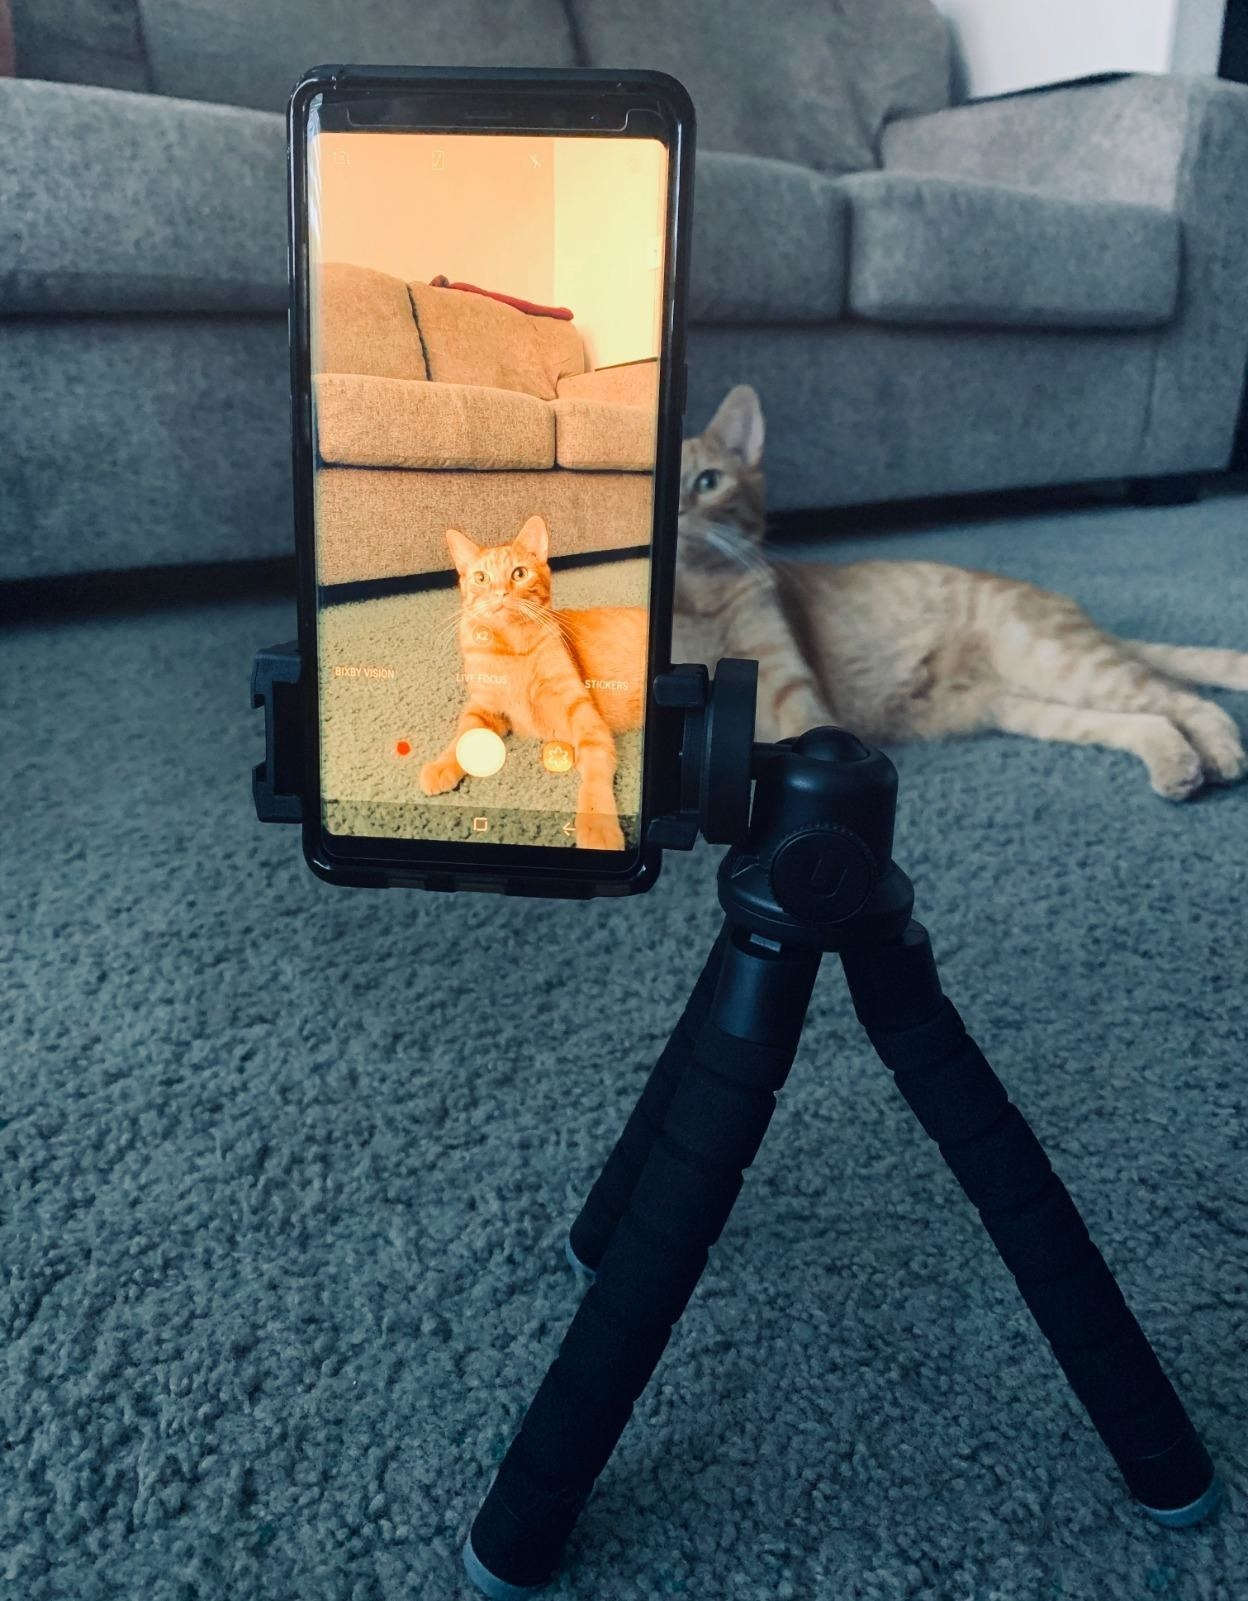 Reviewer photo of the tripod holding an phone pointed at a cat